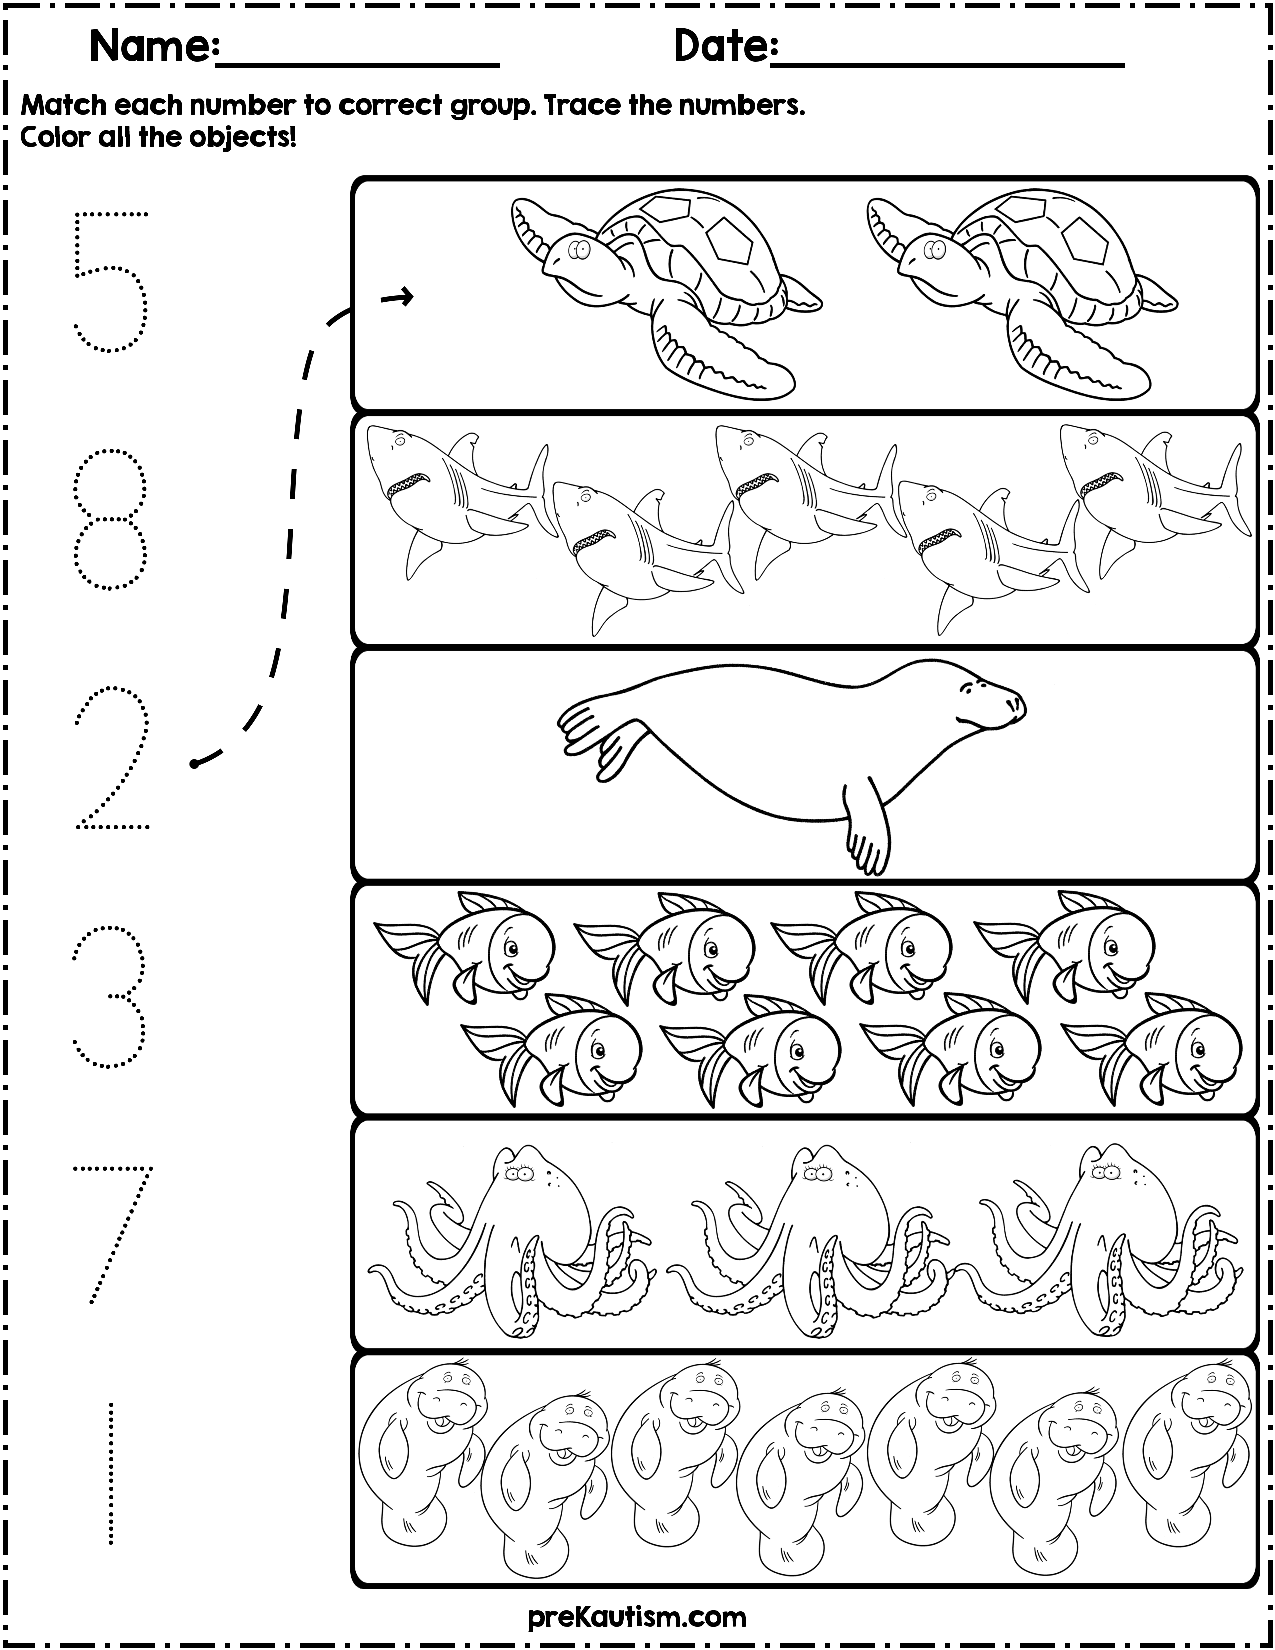 $1.50   Use these worksheets to teach quantity counting and number writing!  Pack includes 10 ocean animal…   Ocean activities preschool [ 1650 x 1275 Pixel ]